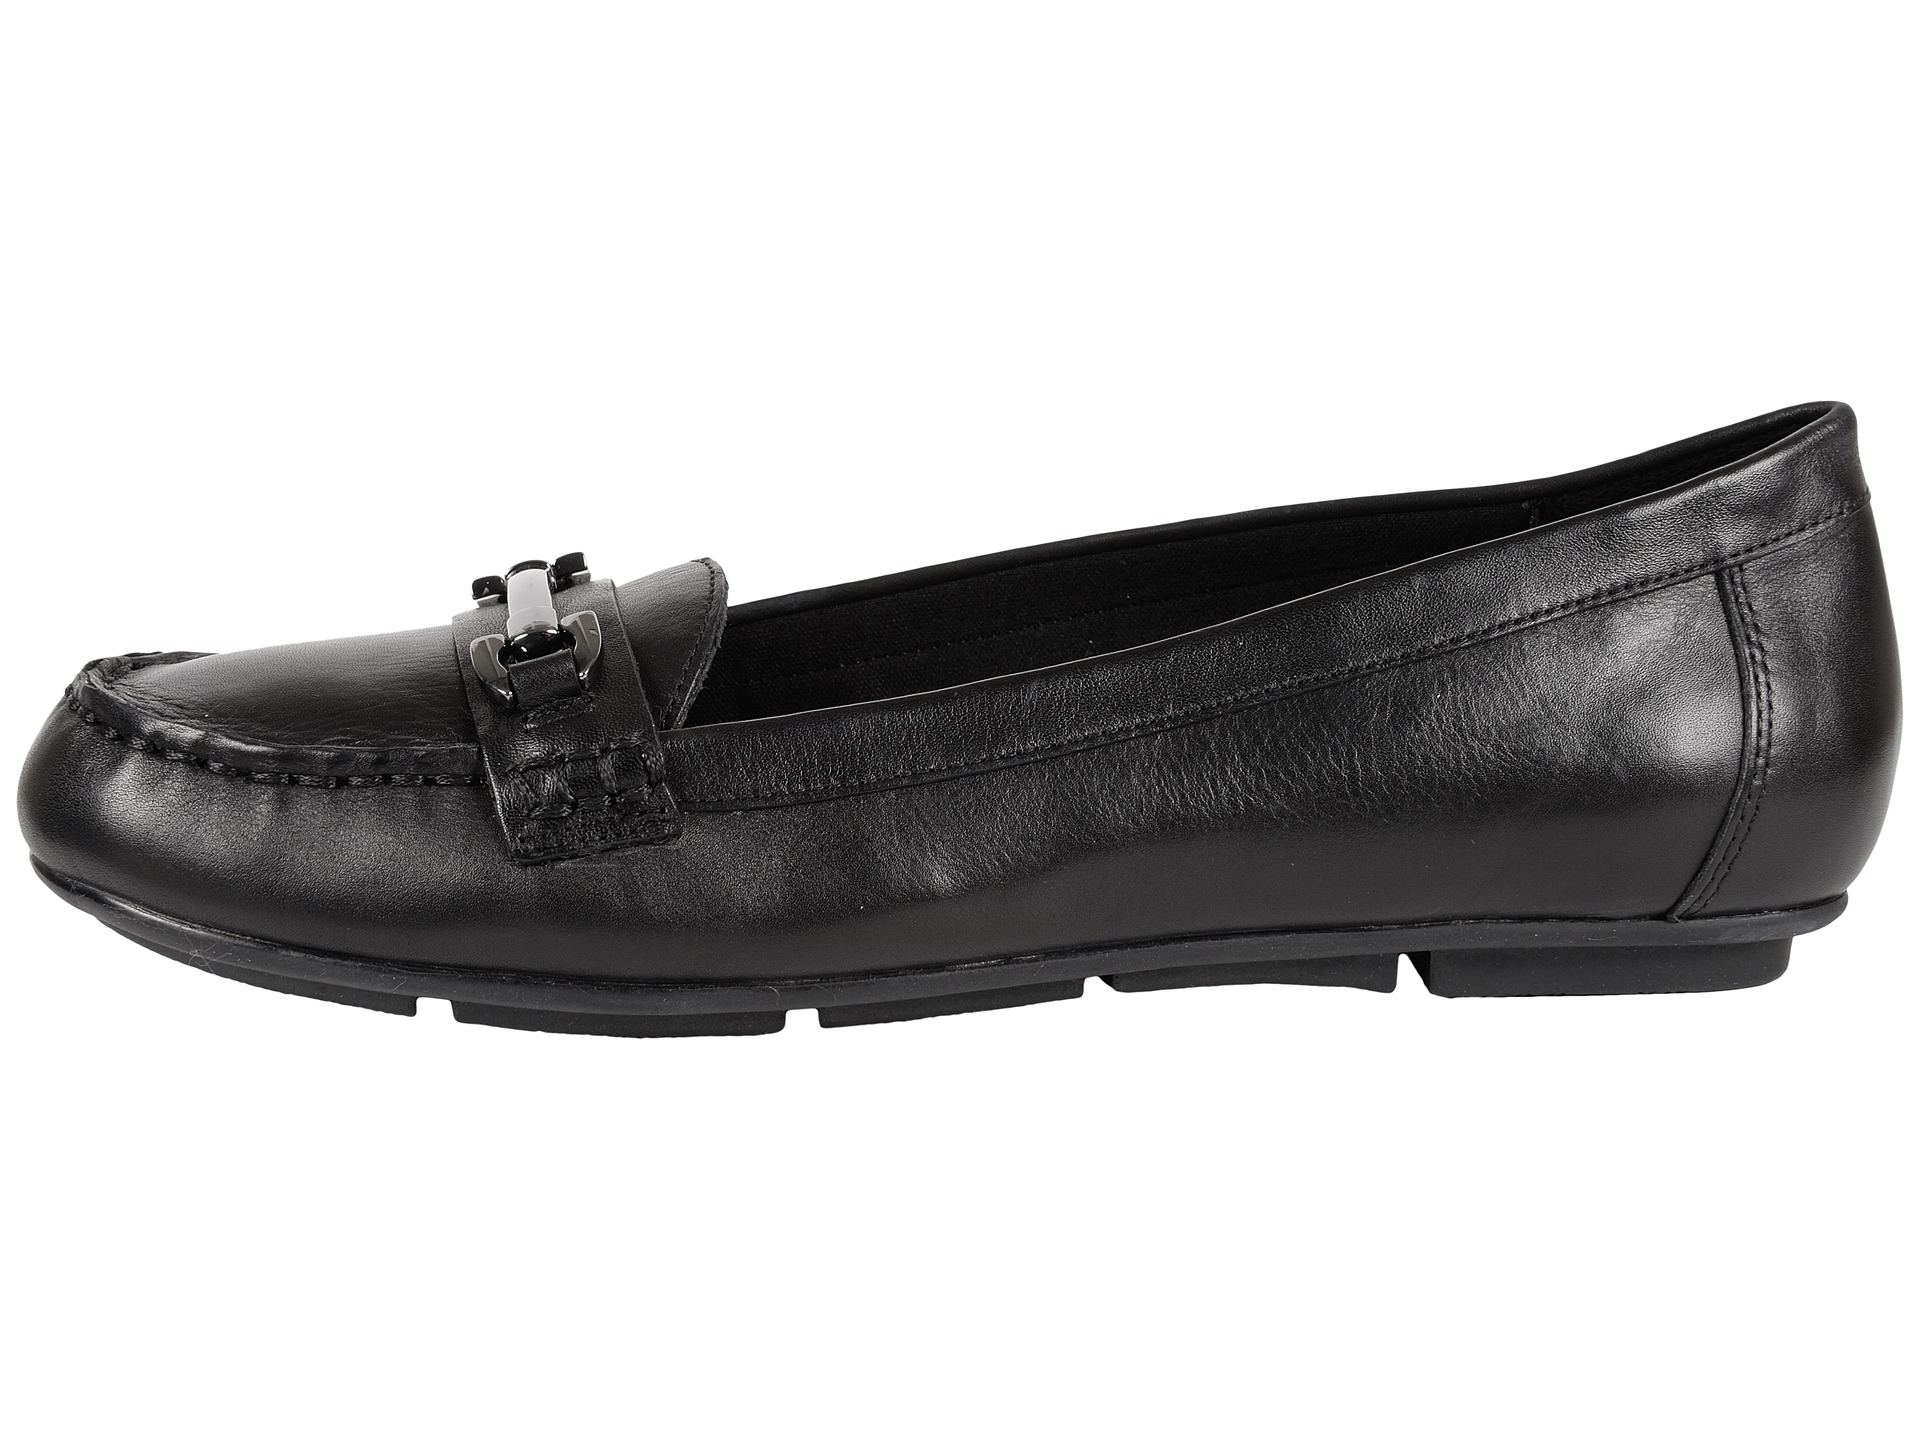 VIONIC Chill Kenya Loafer Black - Zappos.com Free Shipping BOTH Ways